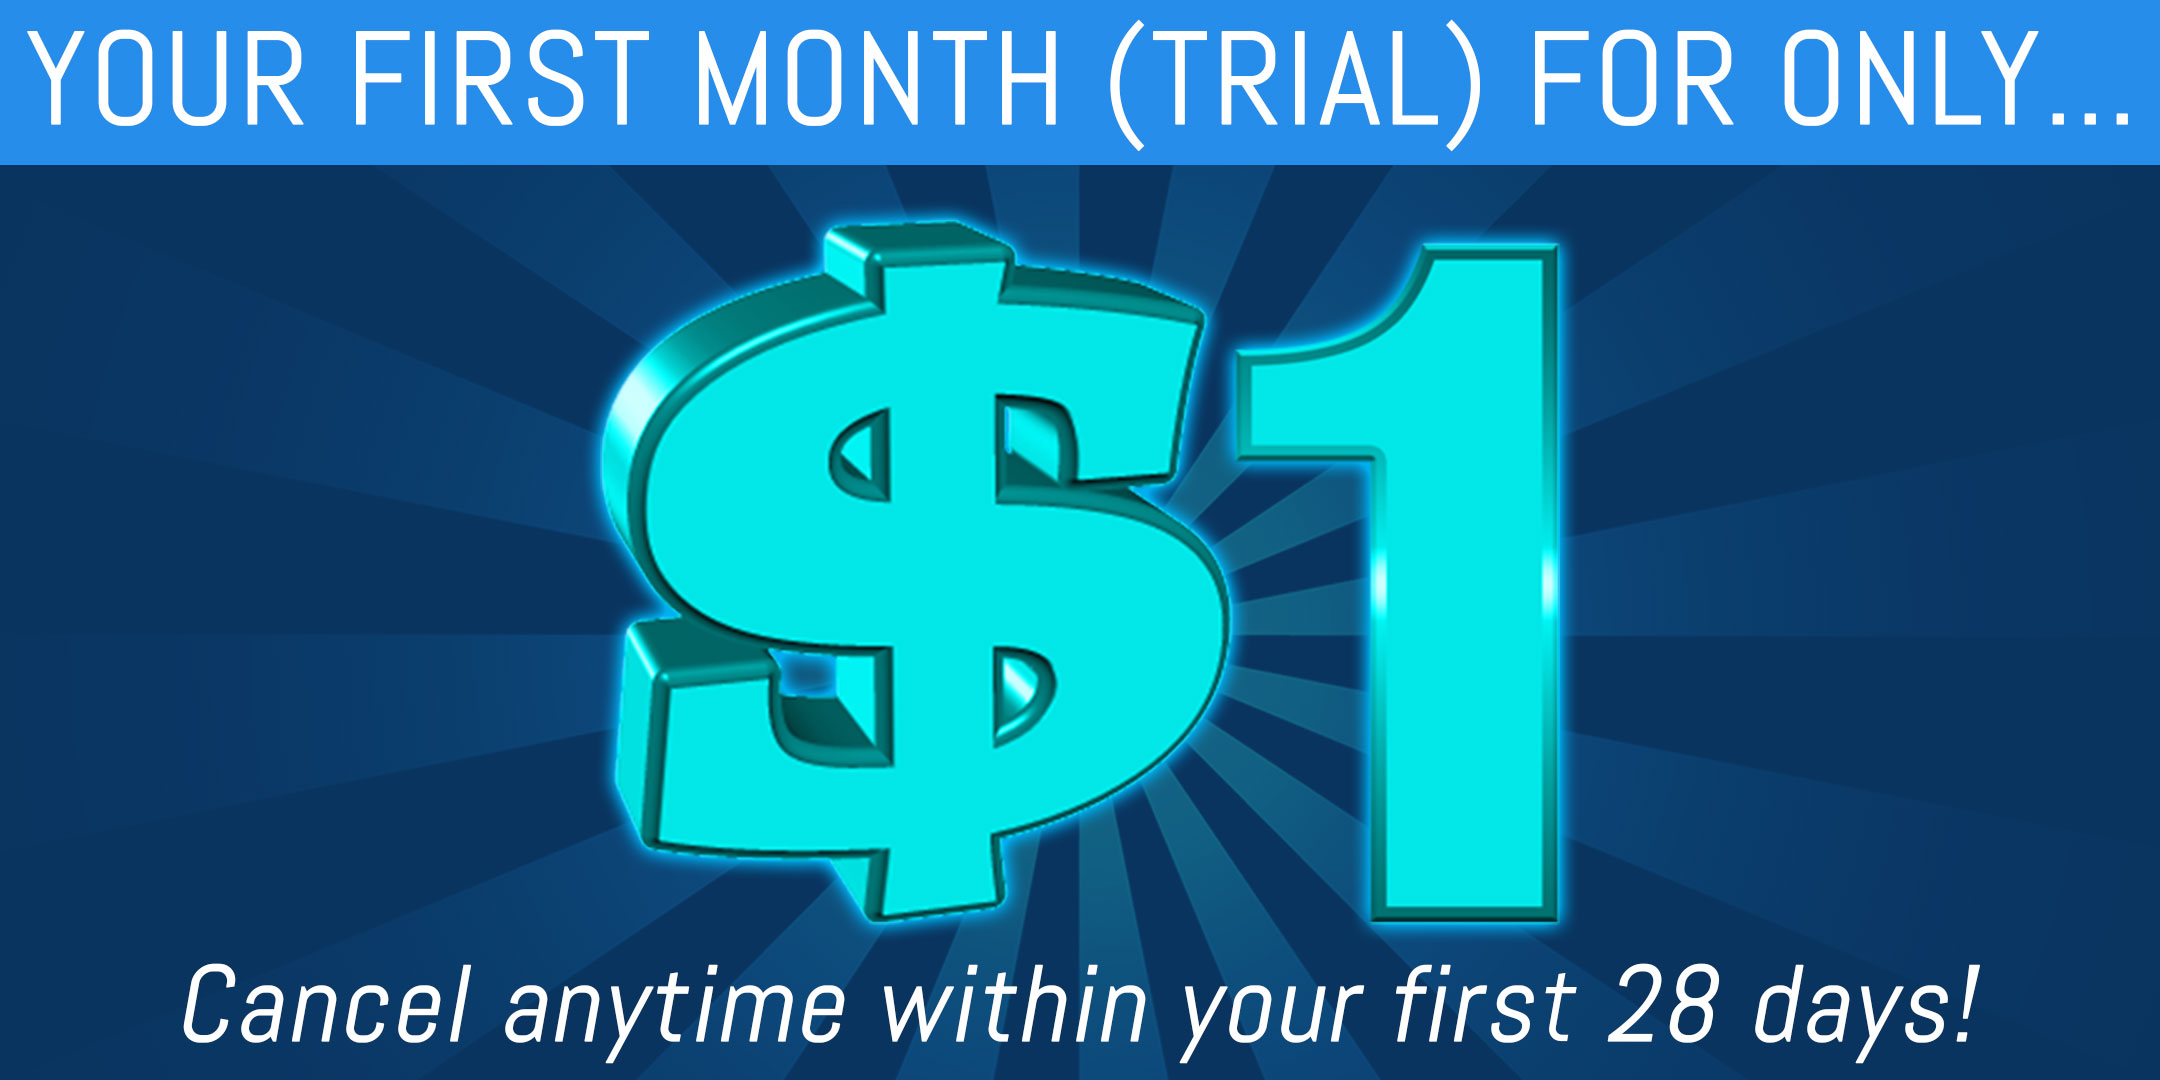 Your first month free